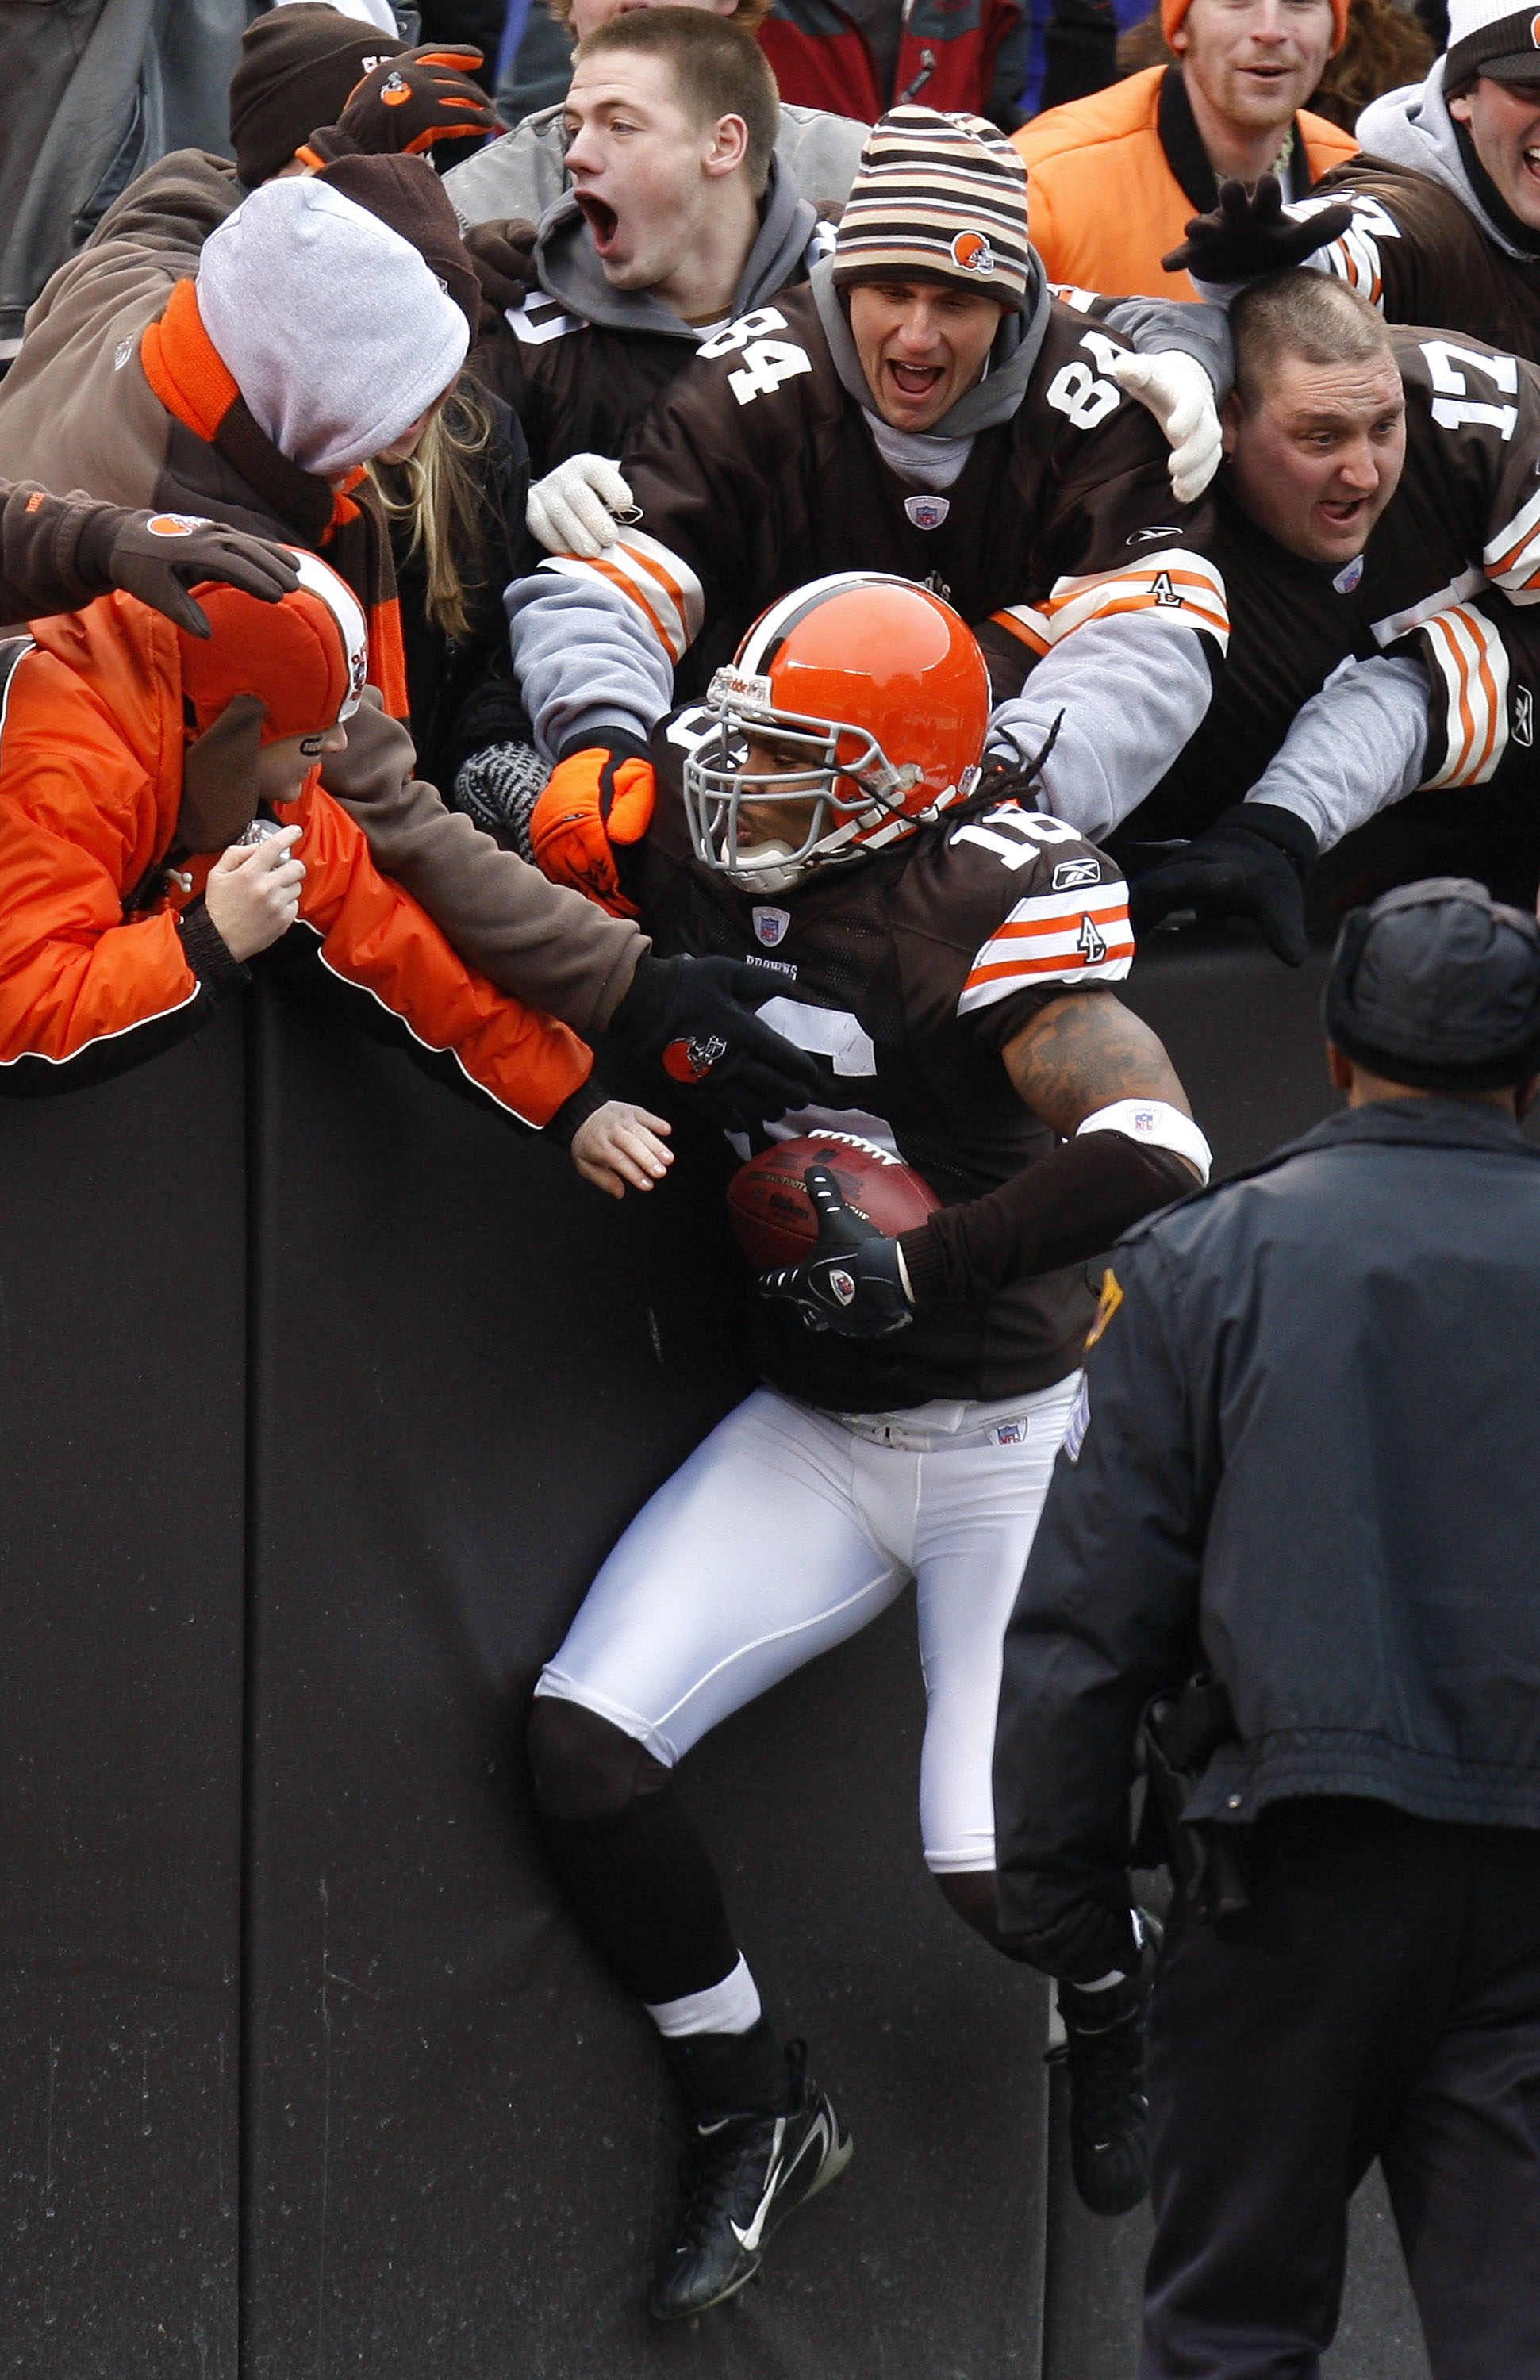 CLEVELAND - DECEMBER 30:  Joshua Cribbs #16 of the Cleveland Browns jumps into the stands to celebrate a first quarter punt return for a touchdown against the San Francisco 49ers on December 30, 2007 at Cleveland Browns Stadium in Cleveland, Ohio. Clevela